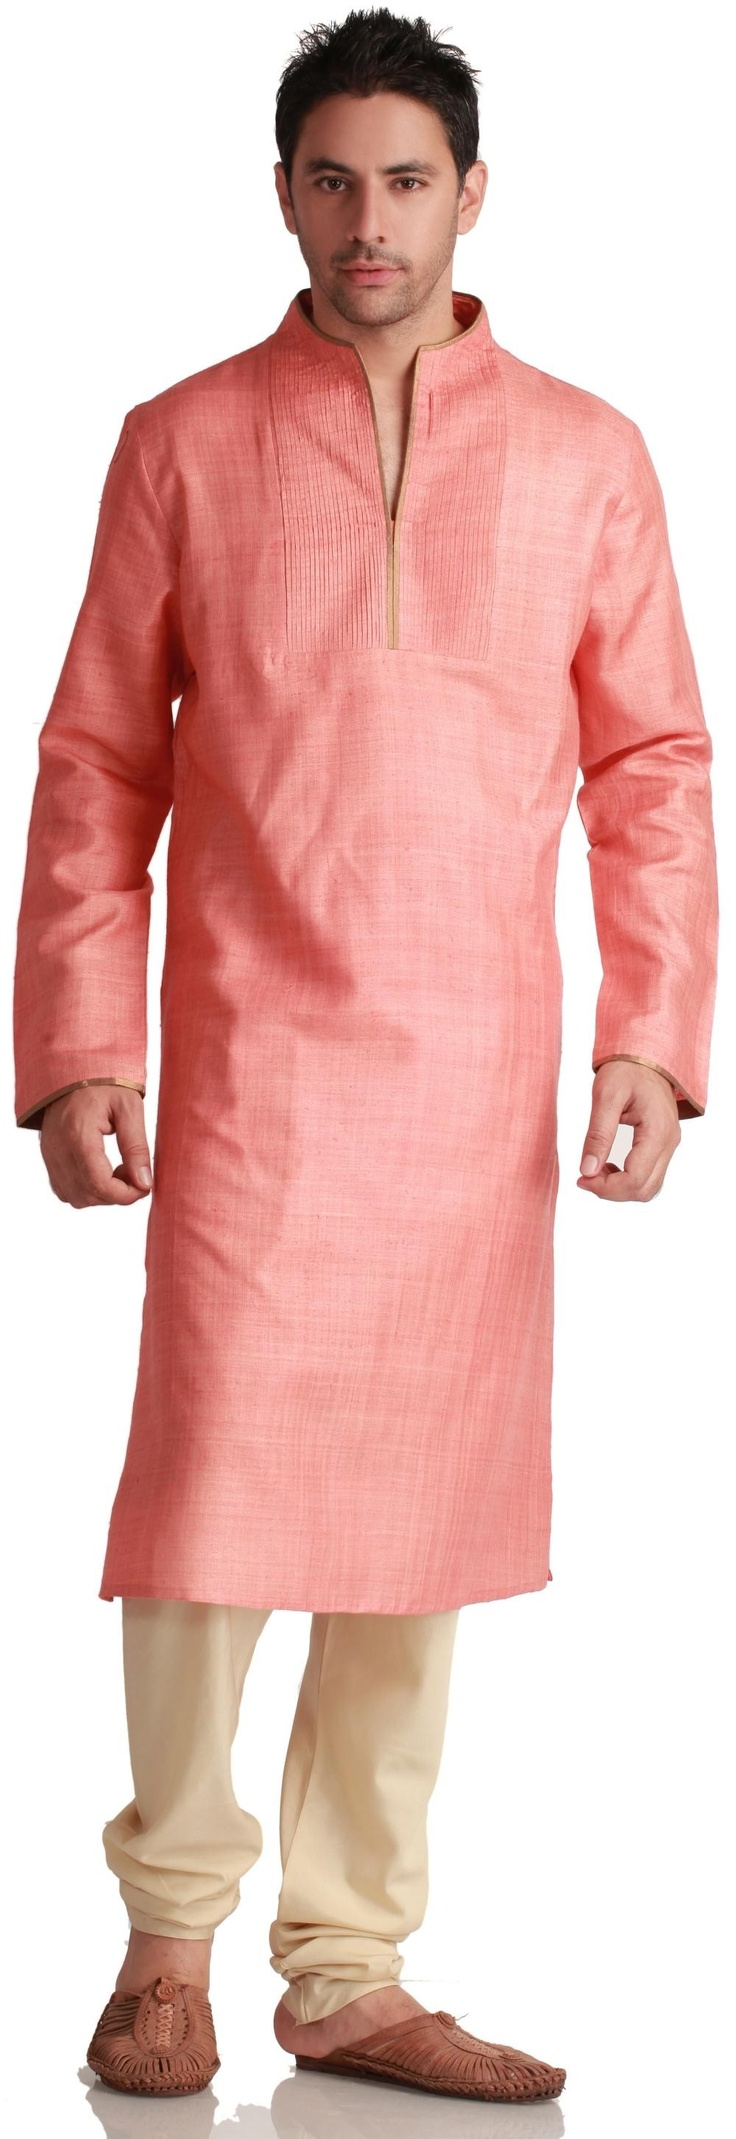 #PINK #SILK #KURTA For #Men WITH PLEATED FRONT   AVS0063KU  $160.00    Shop now @ http://www.angarkh.com